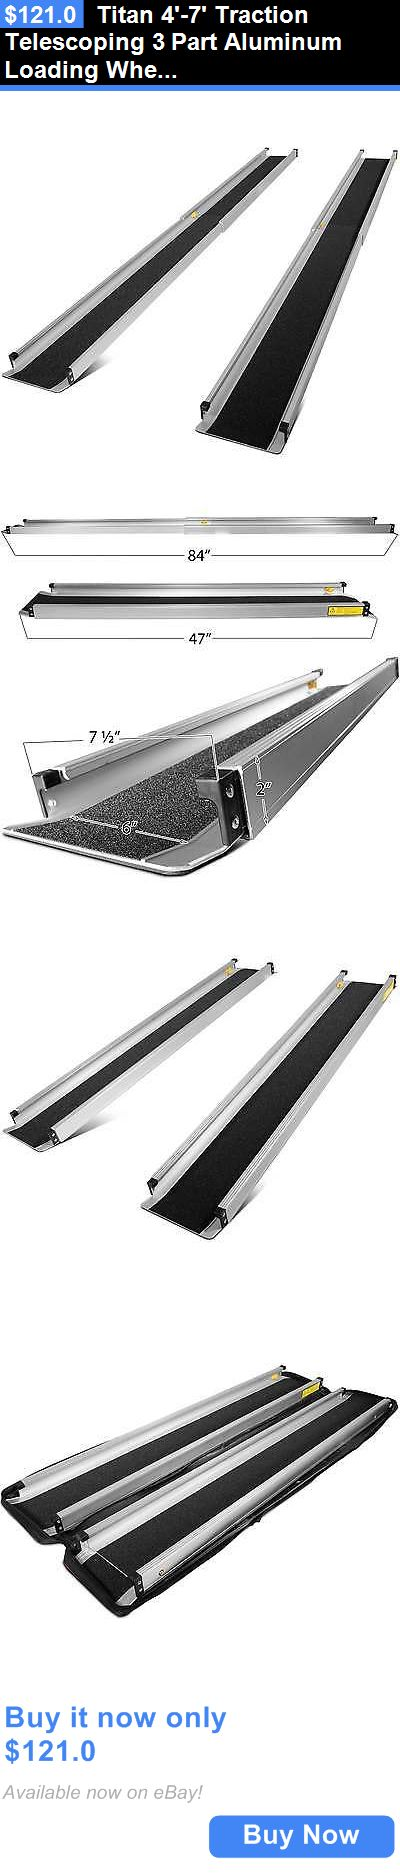 Access Ramps: Titan 4-7 Traction Telescoping 3 Part Aluminum Loading Wheelchair Ramp W/ Bag BUY IT NOW ONLY: $121.0